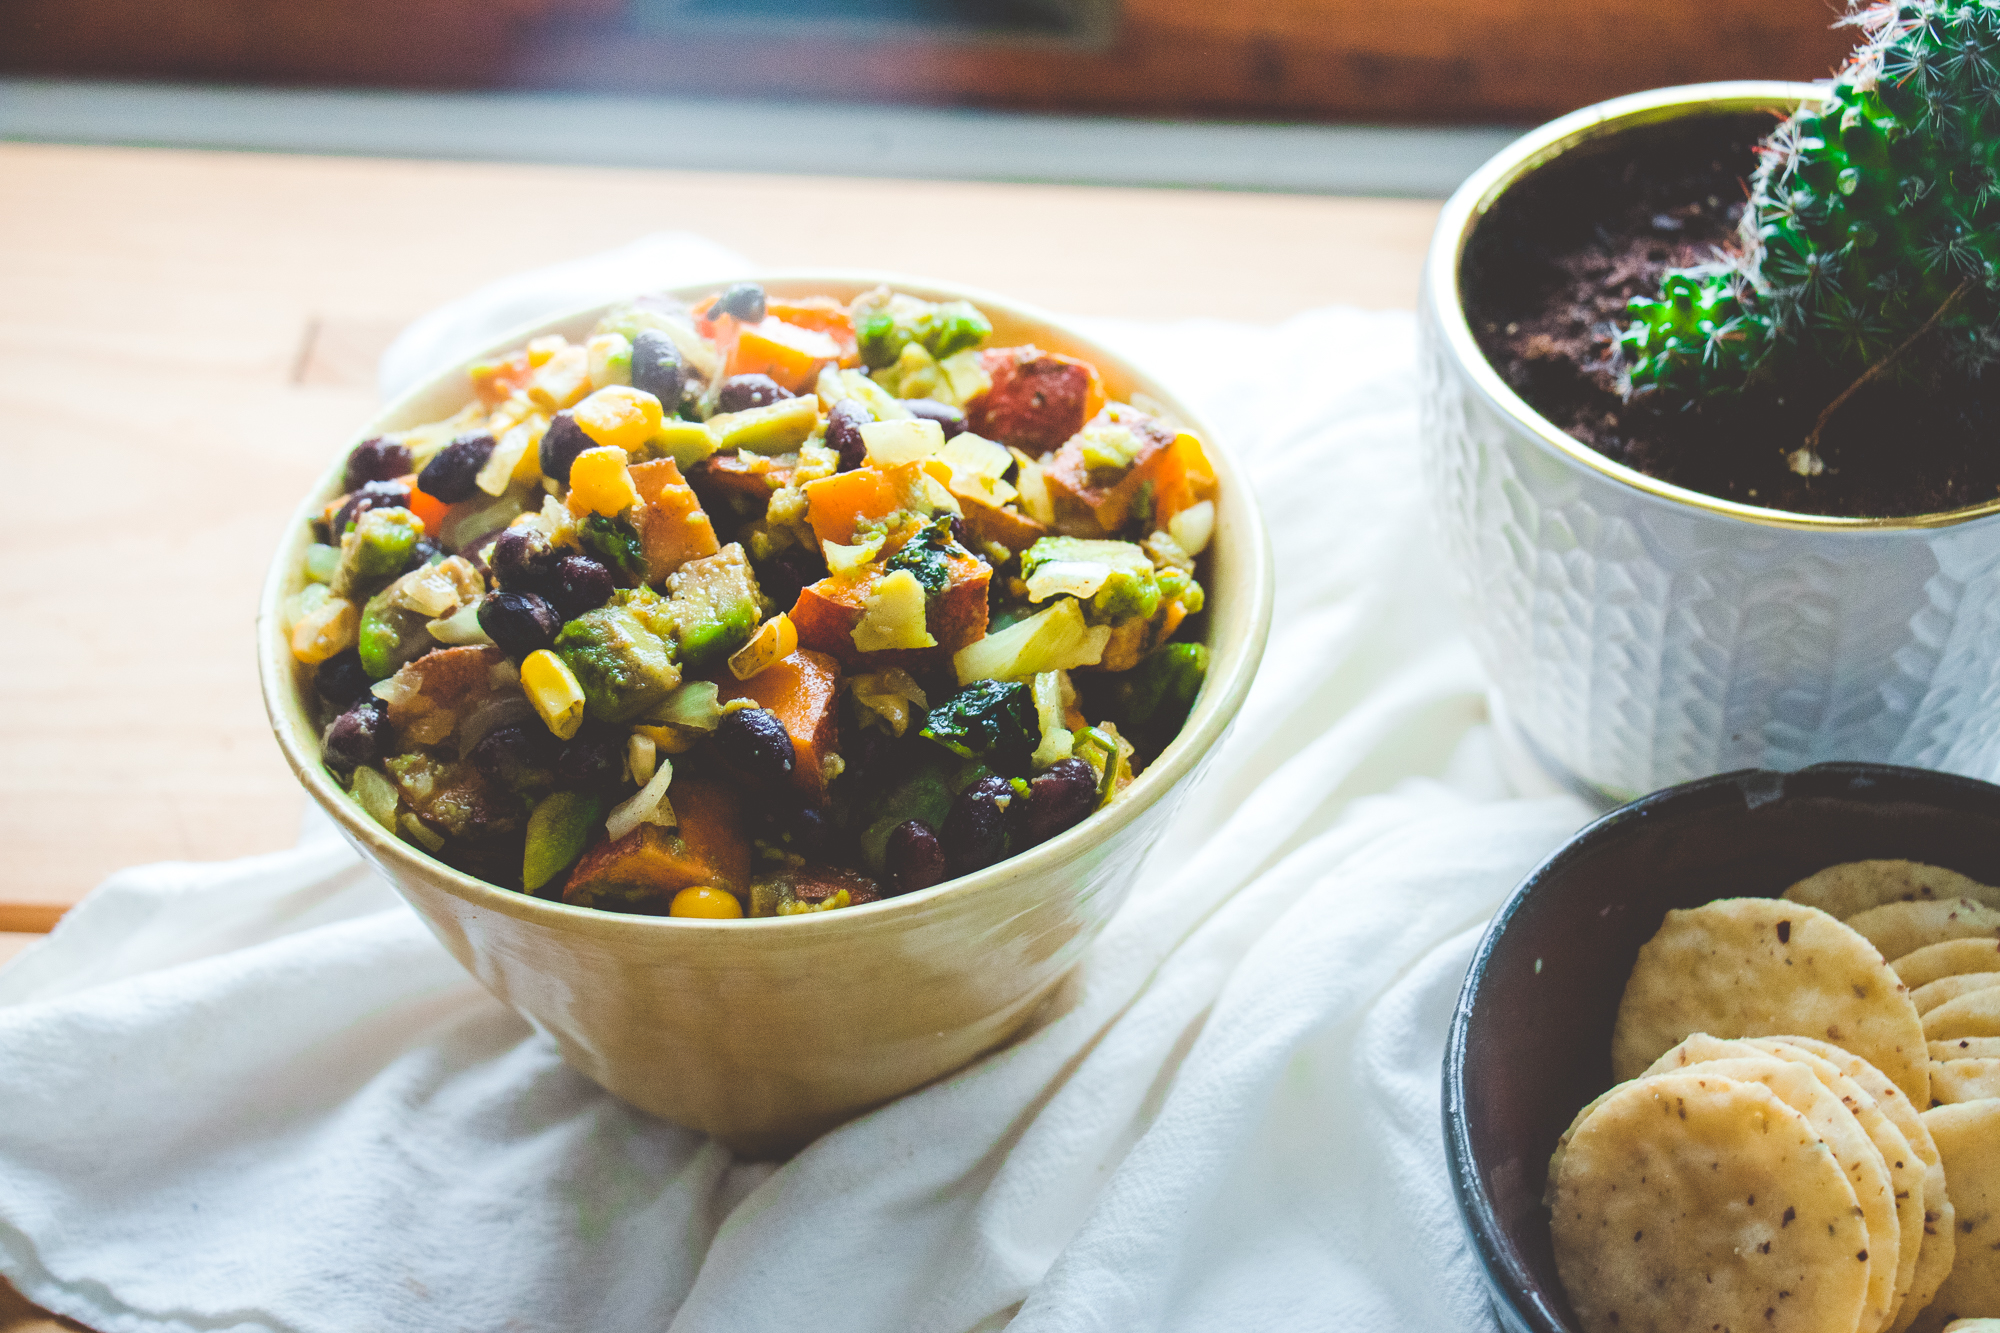 Southwest Sweet Potato Bowl